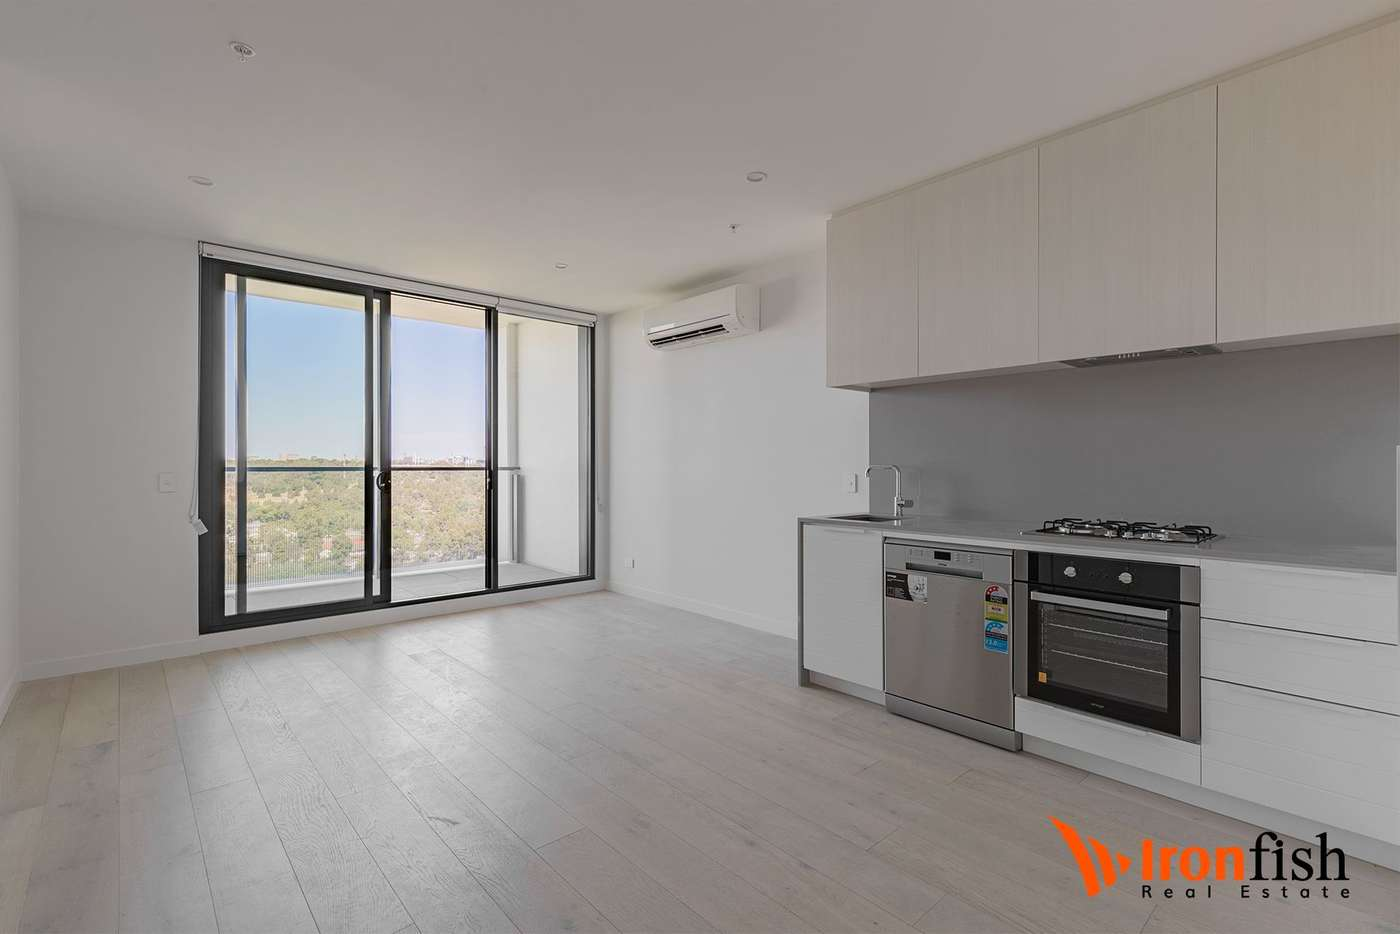 Main view of Homely apartment listing, 1302/91 Galada Avenue, Parkville VIC 3052